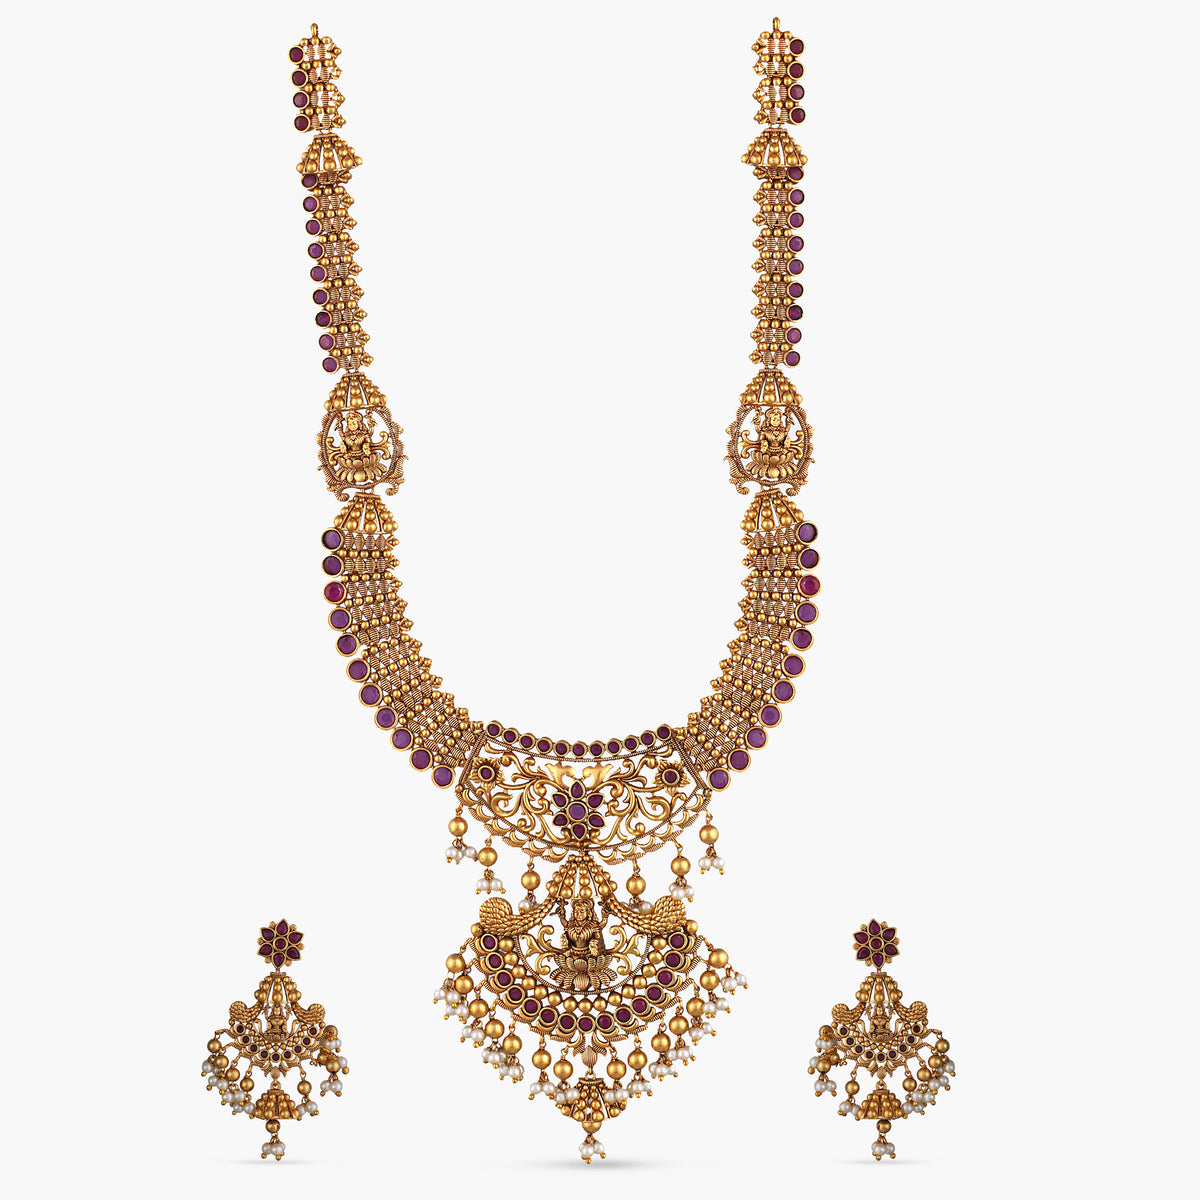 Evani Antique Long Necklace Set